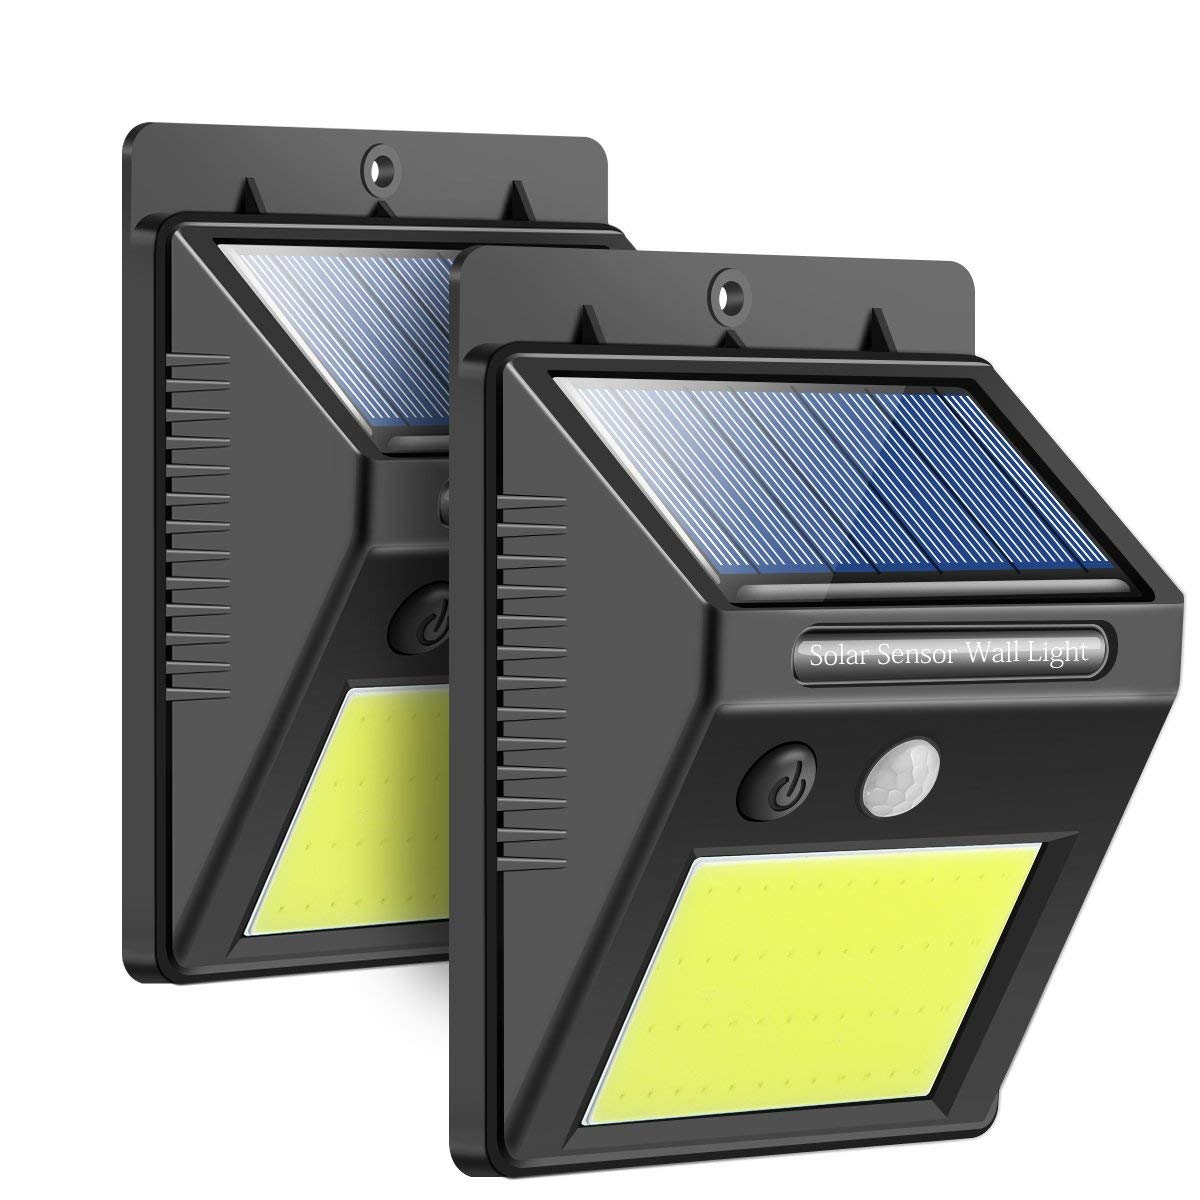 [Upgraded] Solar Lights Outdoor, Waterproof Wireless 48 LED Solar Motion Sensor Wall Light Security Night Lighting with Easy Install for Patio, Deck, Yard, Garden, Fence, Driveway, Garage(2-Pack)